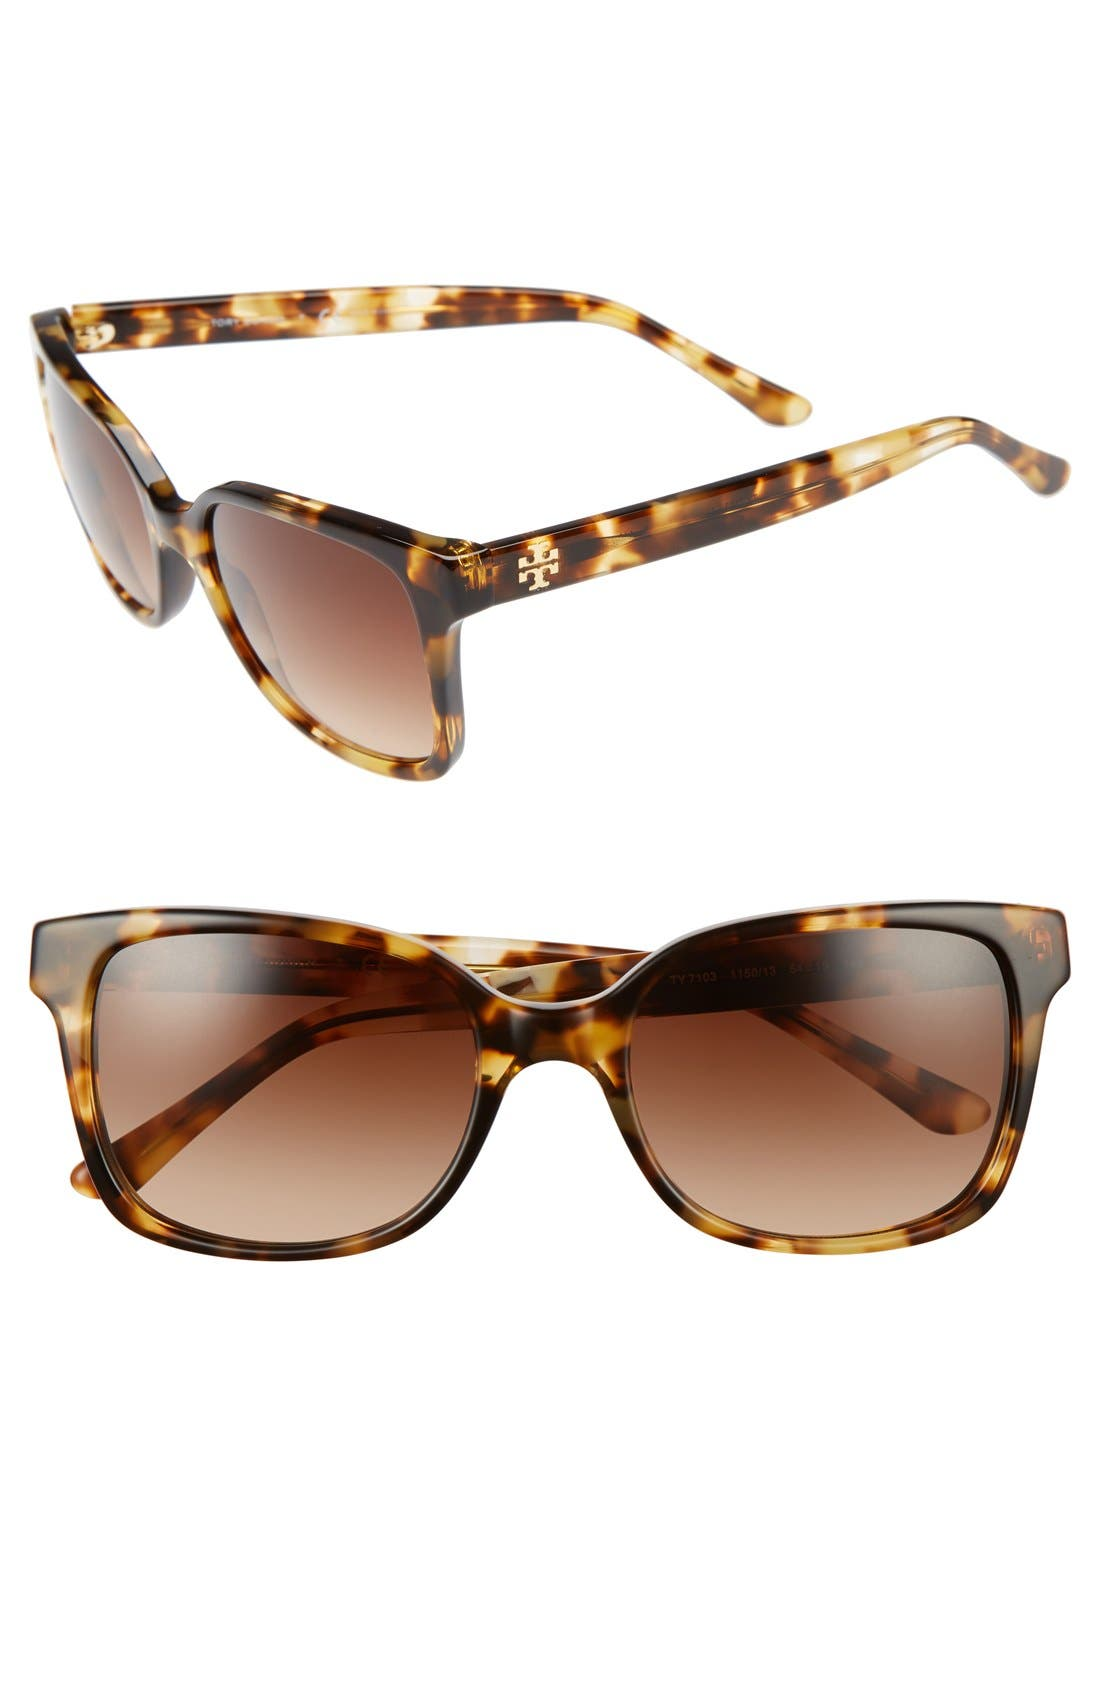 54mm Sunglasses,                             Main thumbnail 1, color,                             Light Tortoise